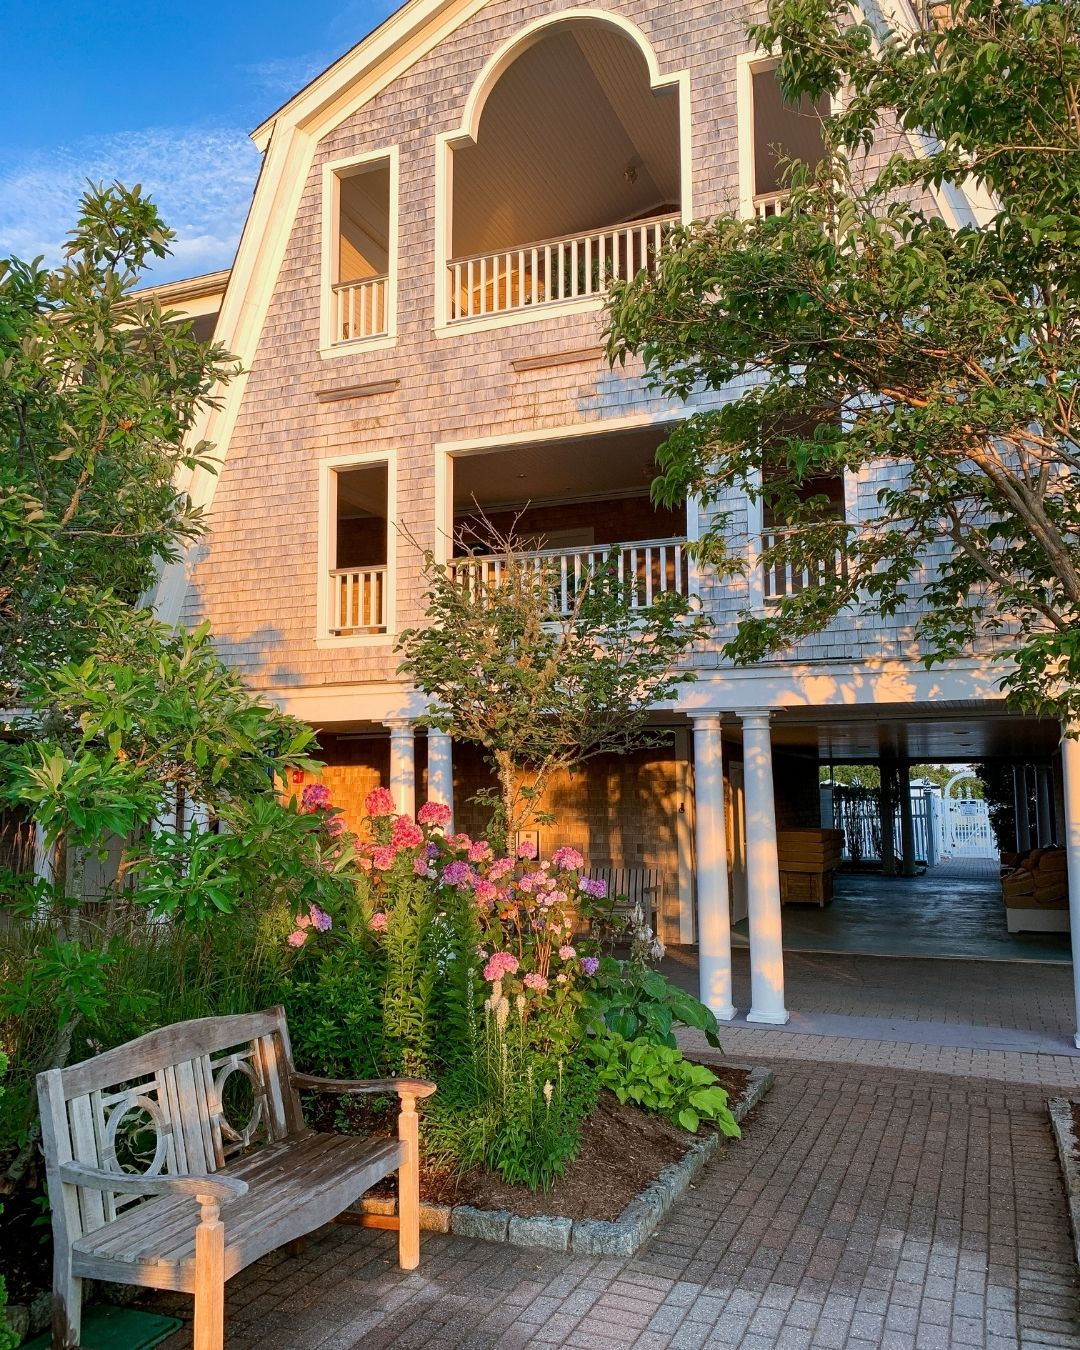 Winnetu Oceanside Resort is a unique and memorable place to stay on Marthas Vineyard. Located in the Katama section of Edgartown